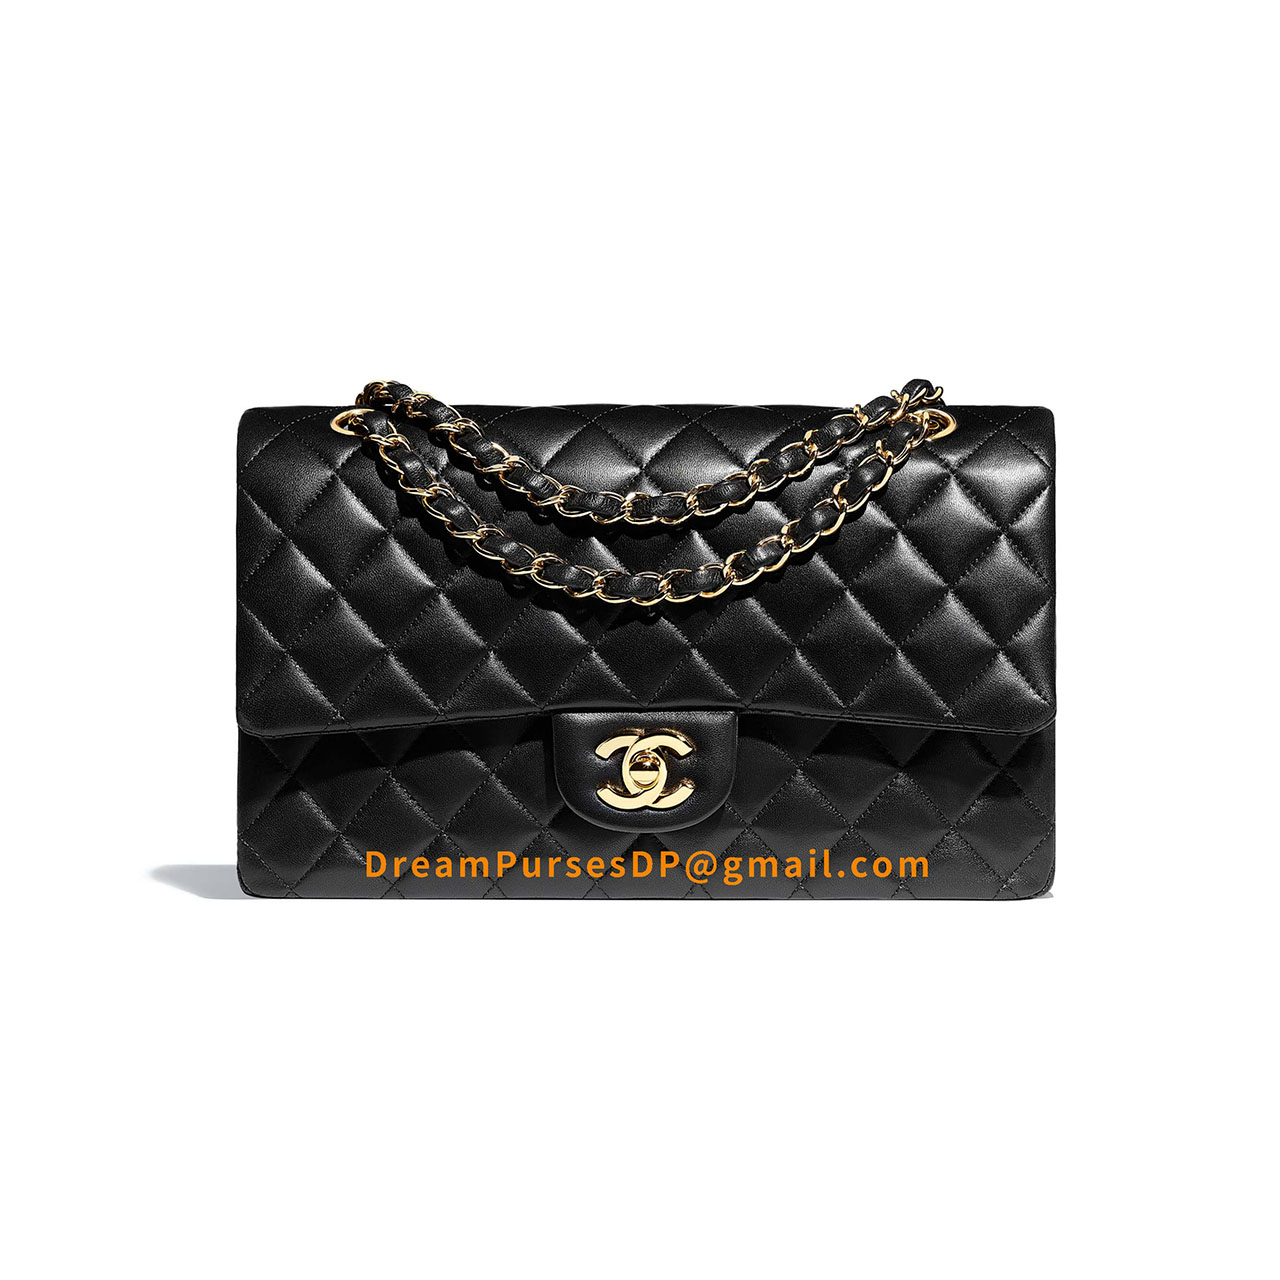 Chanel Medium Classic Flap Bag Black Lambskin GHW